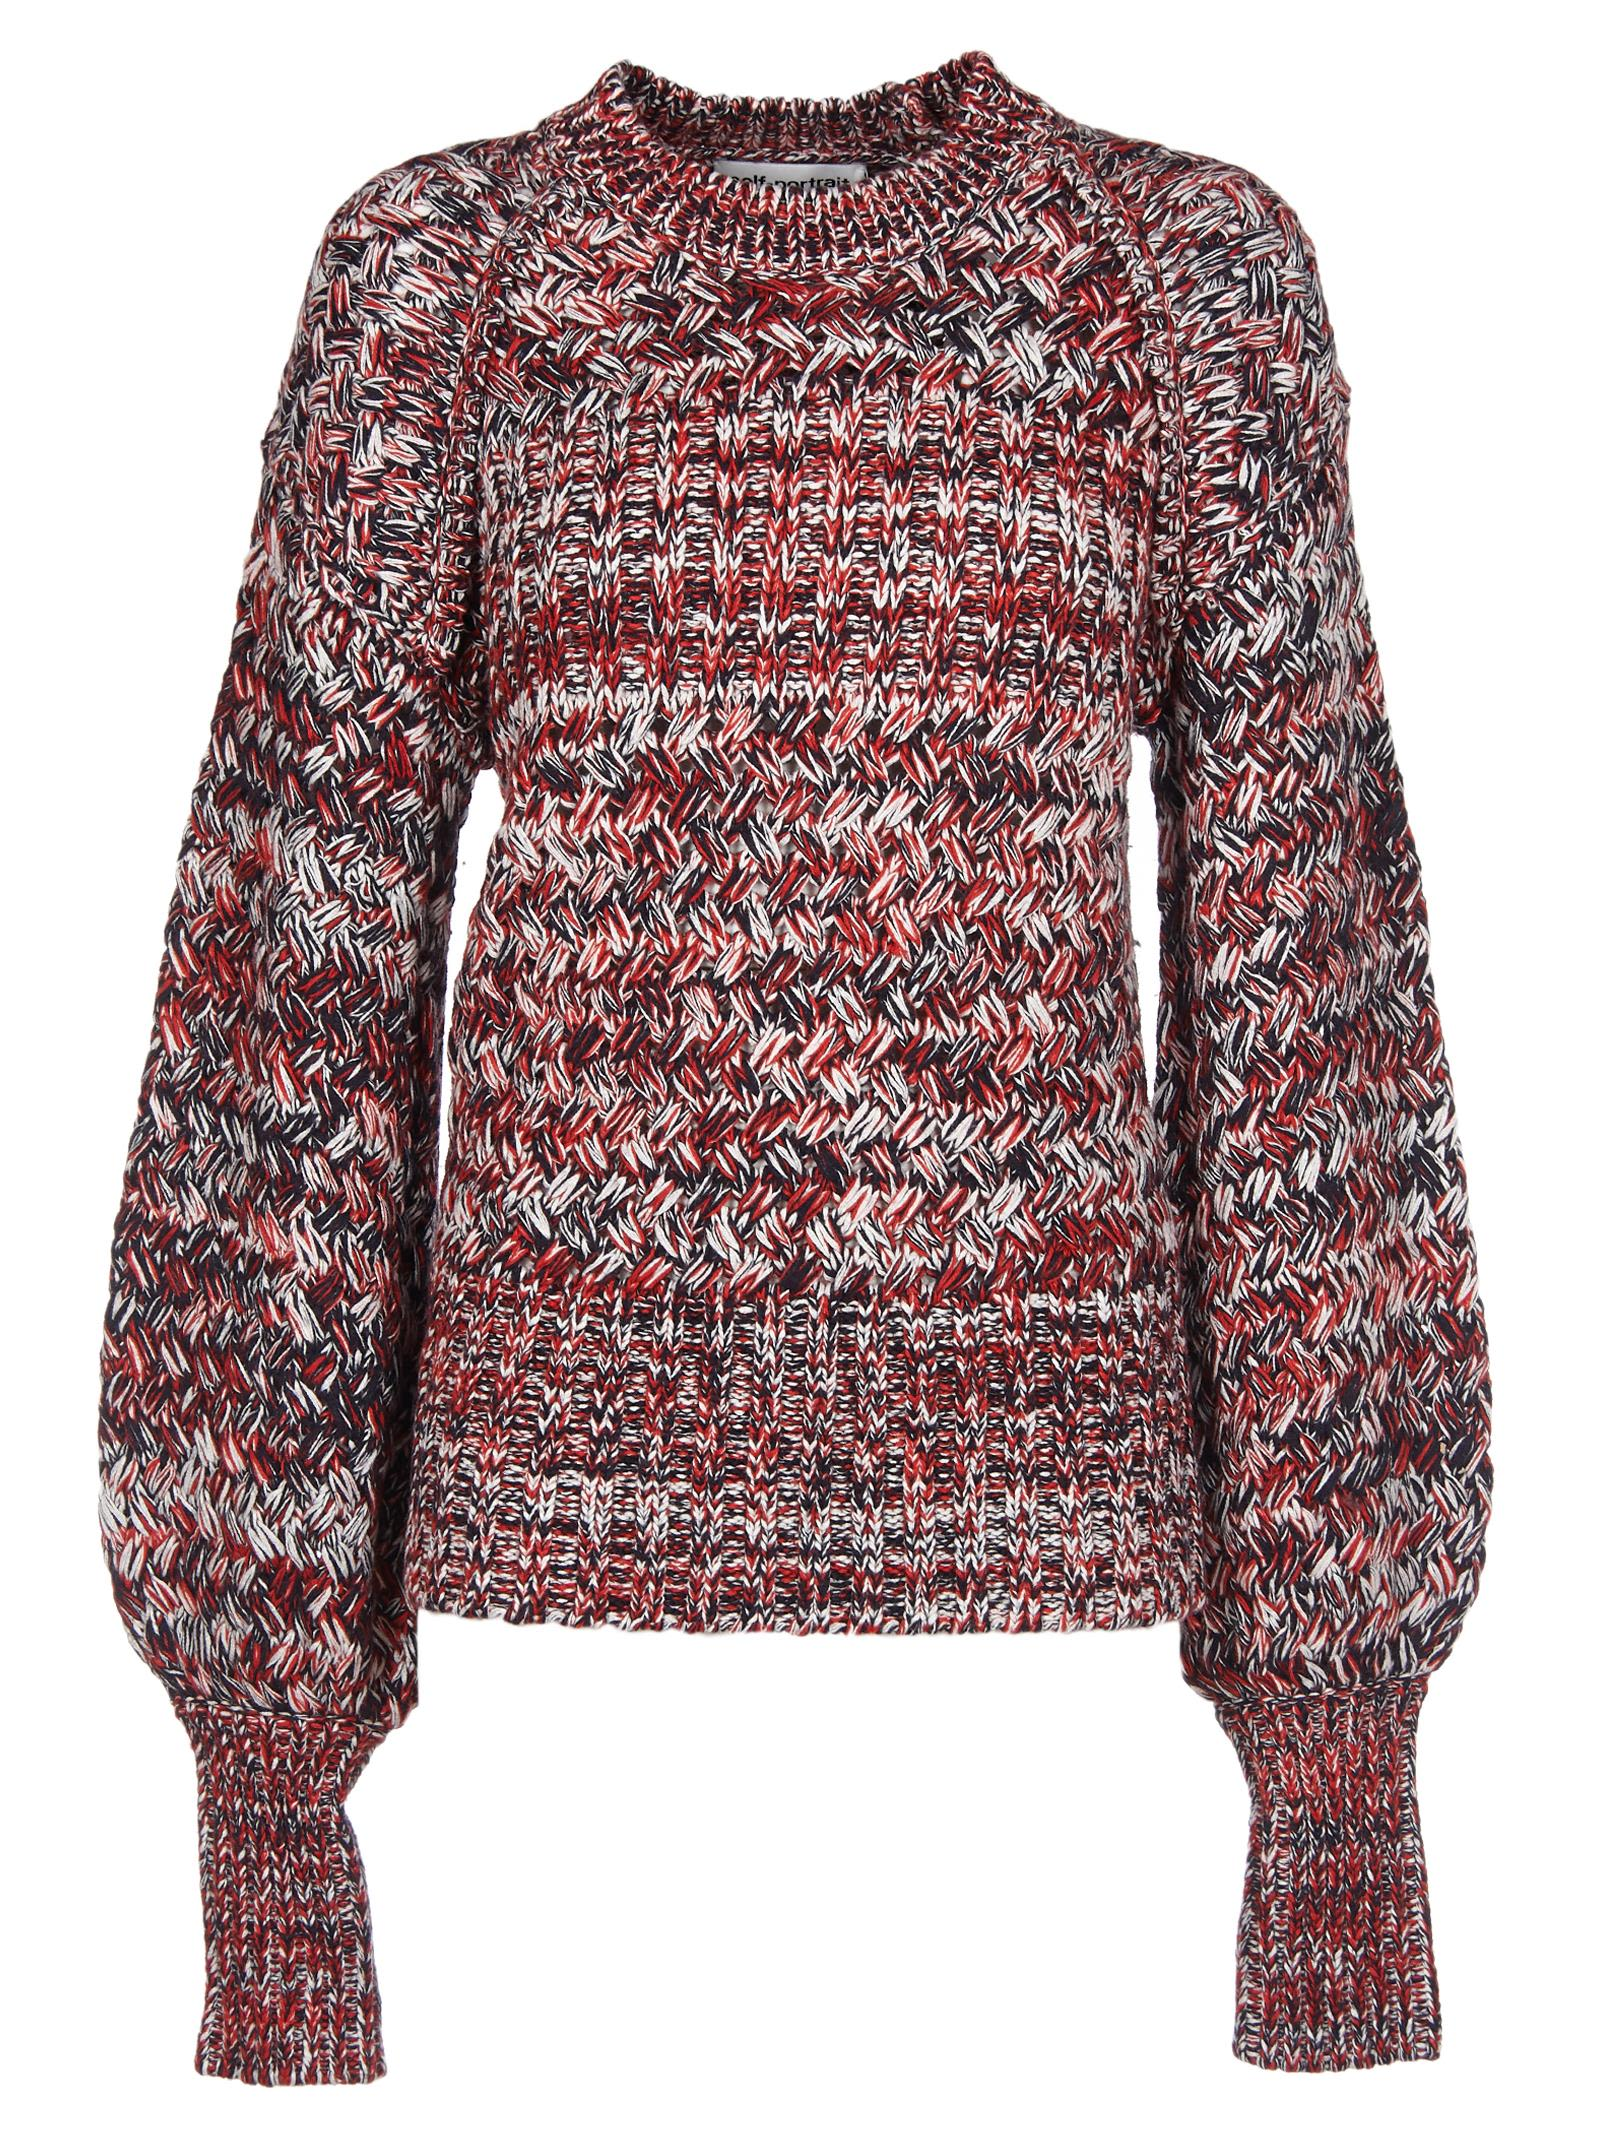 Self-Portrait Clothing SELF-PORTRAIT KNITTED SWEATER